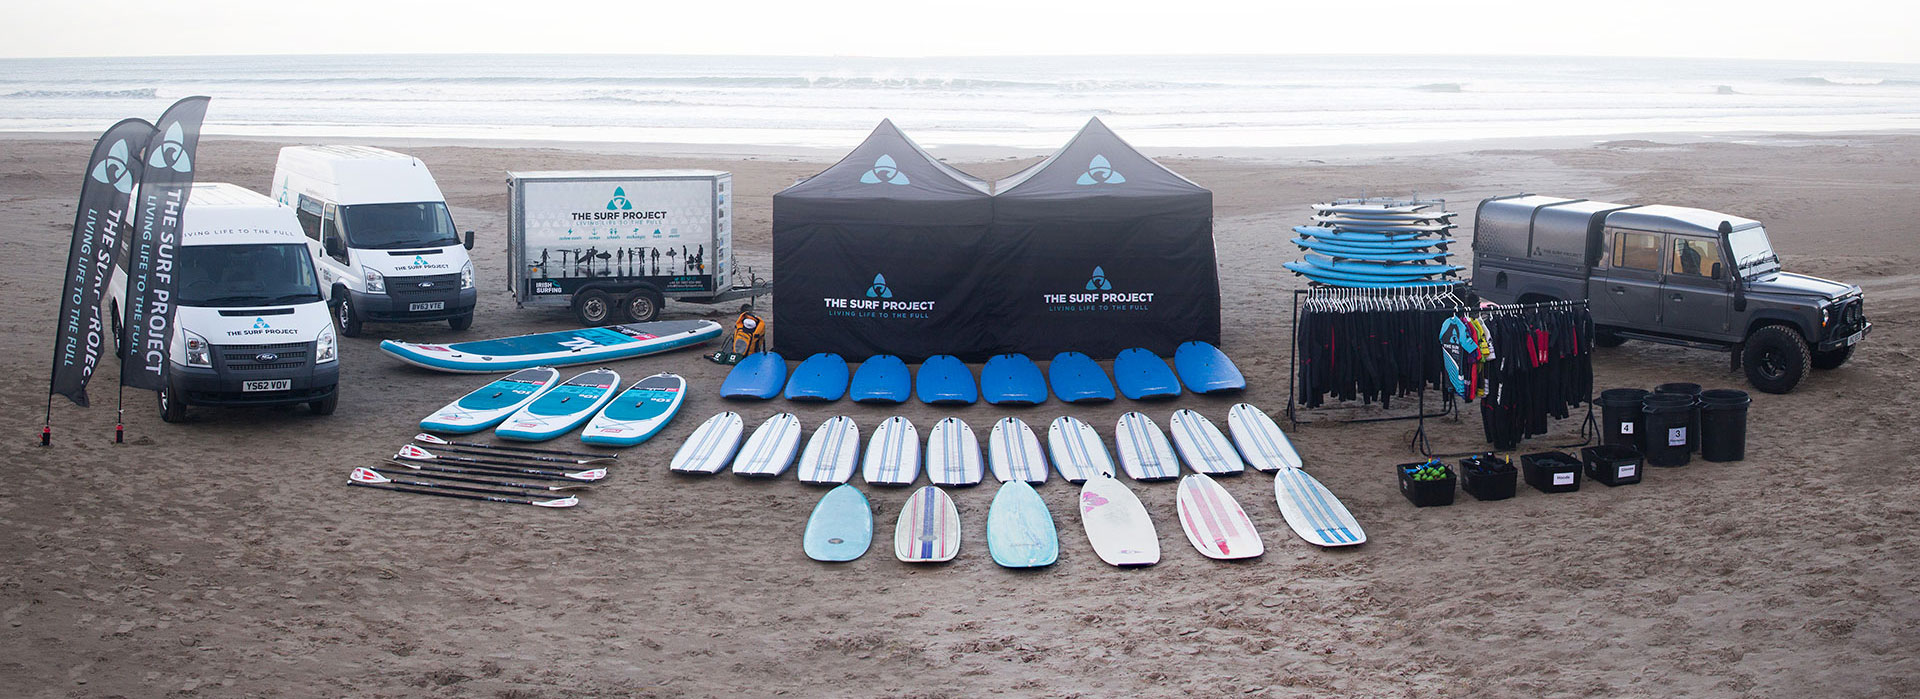 Surf equipment hire in Portrush